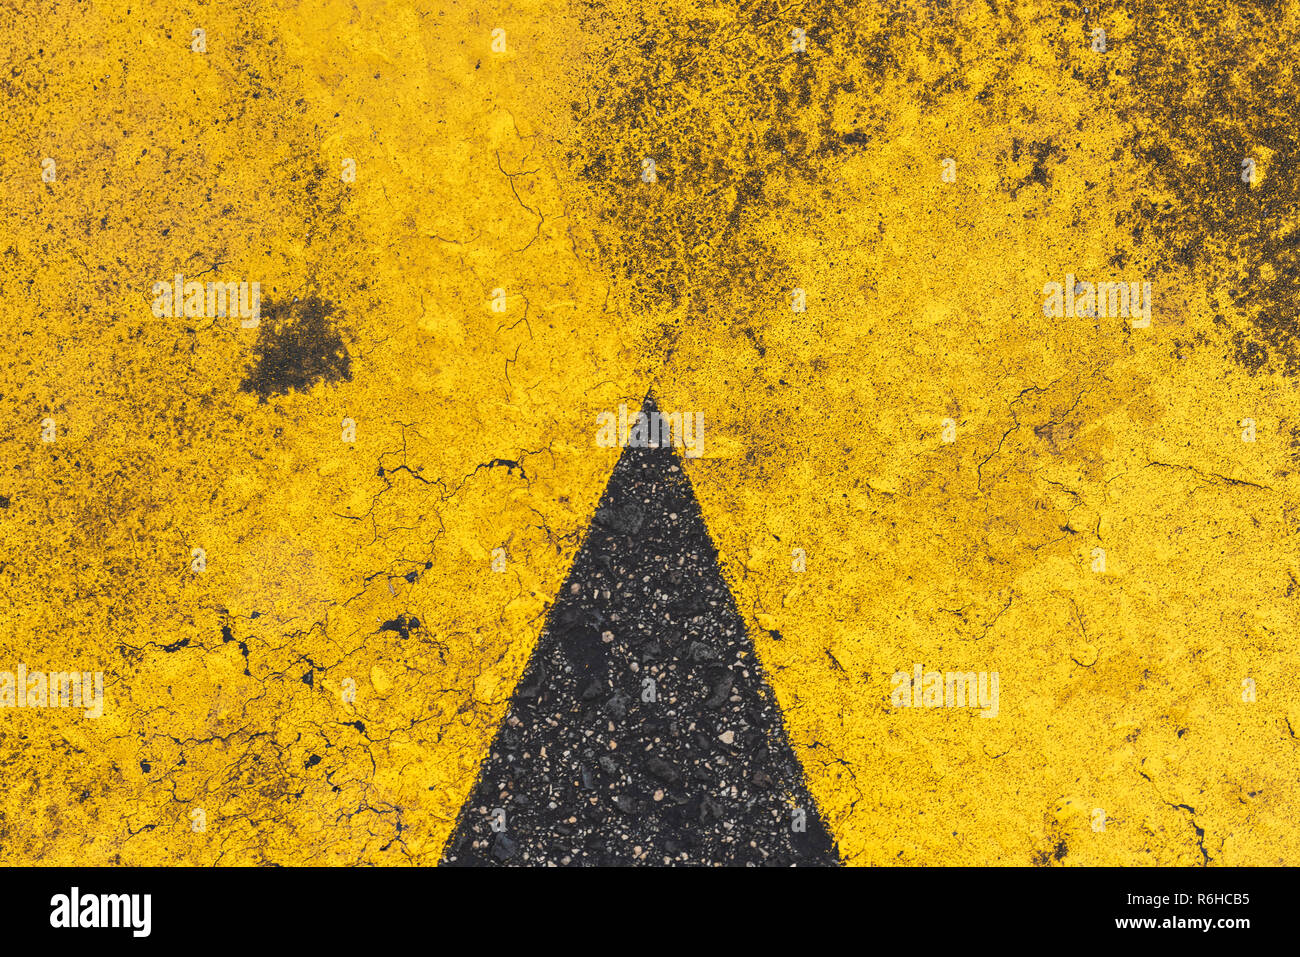 Yellow markings on surface of asphalt road as background - Stock Image